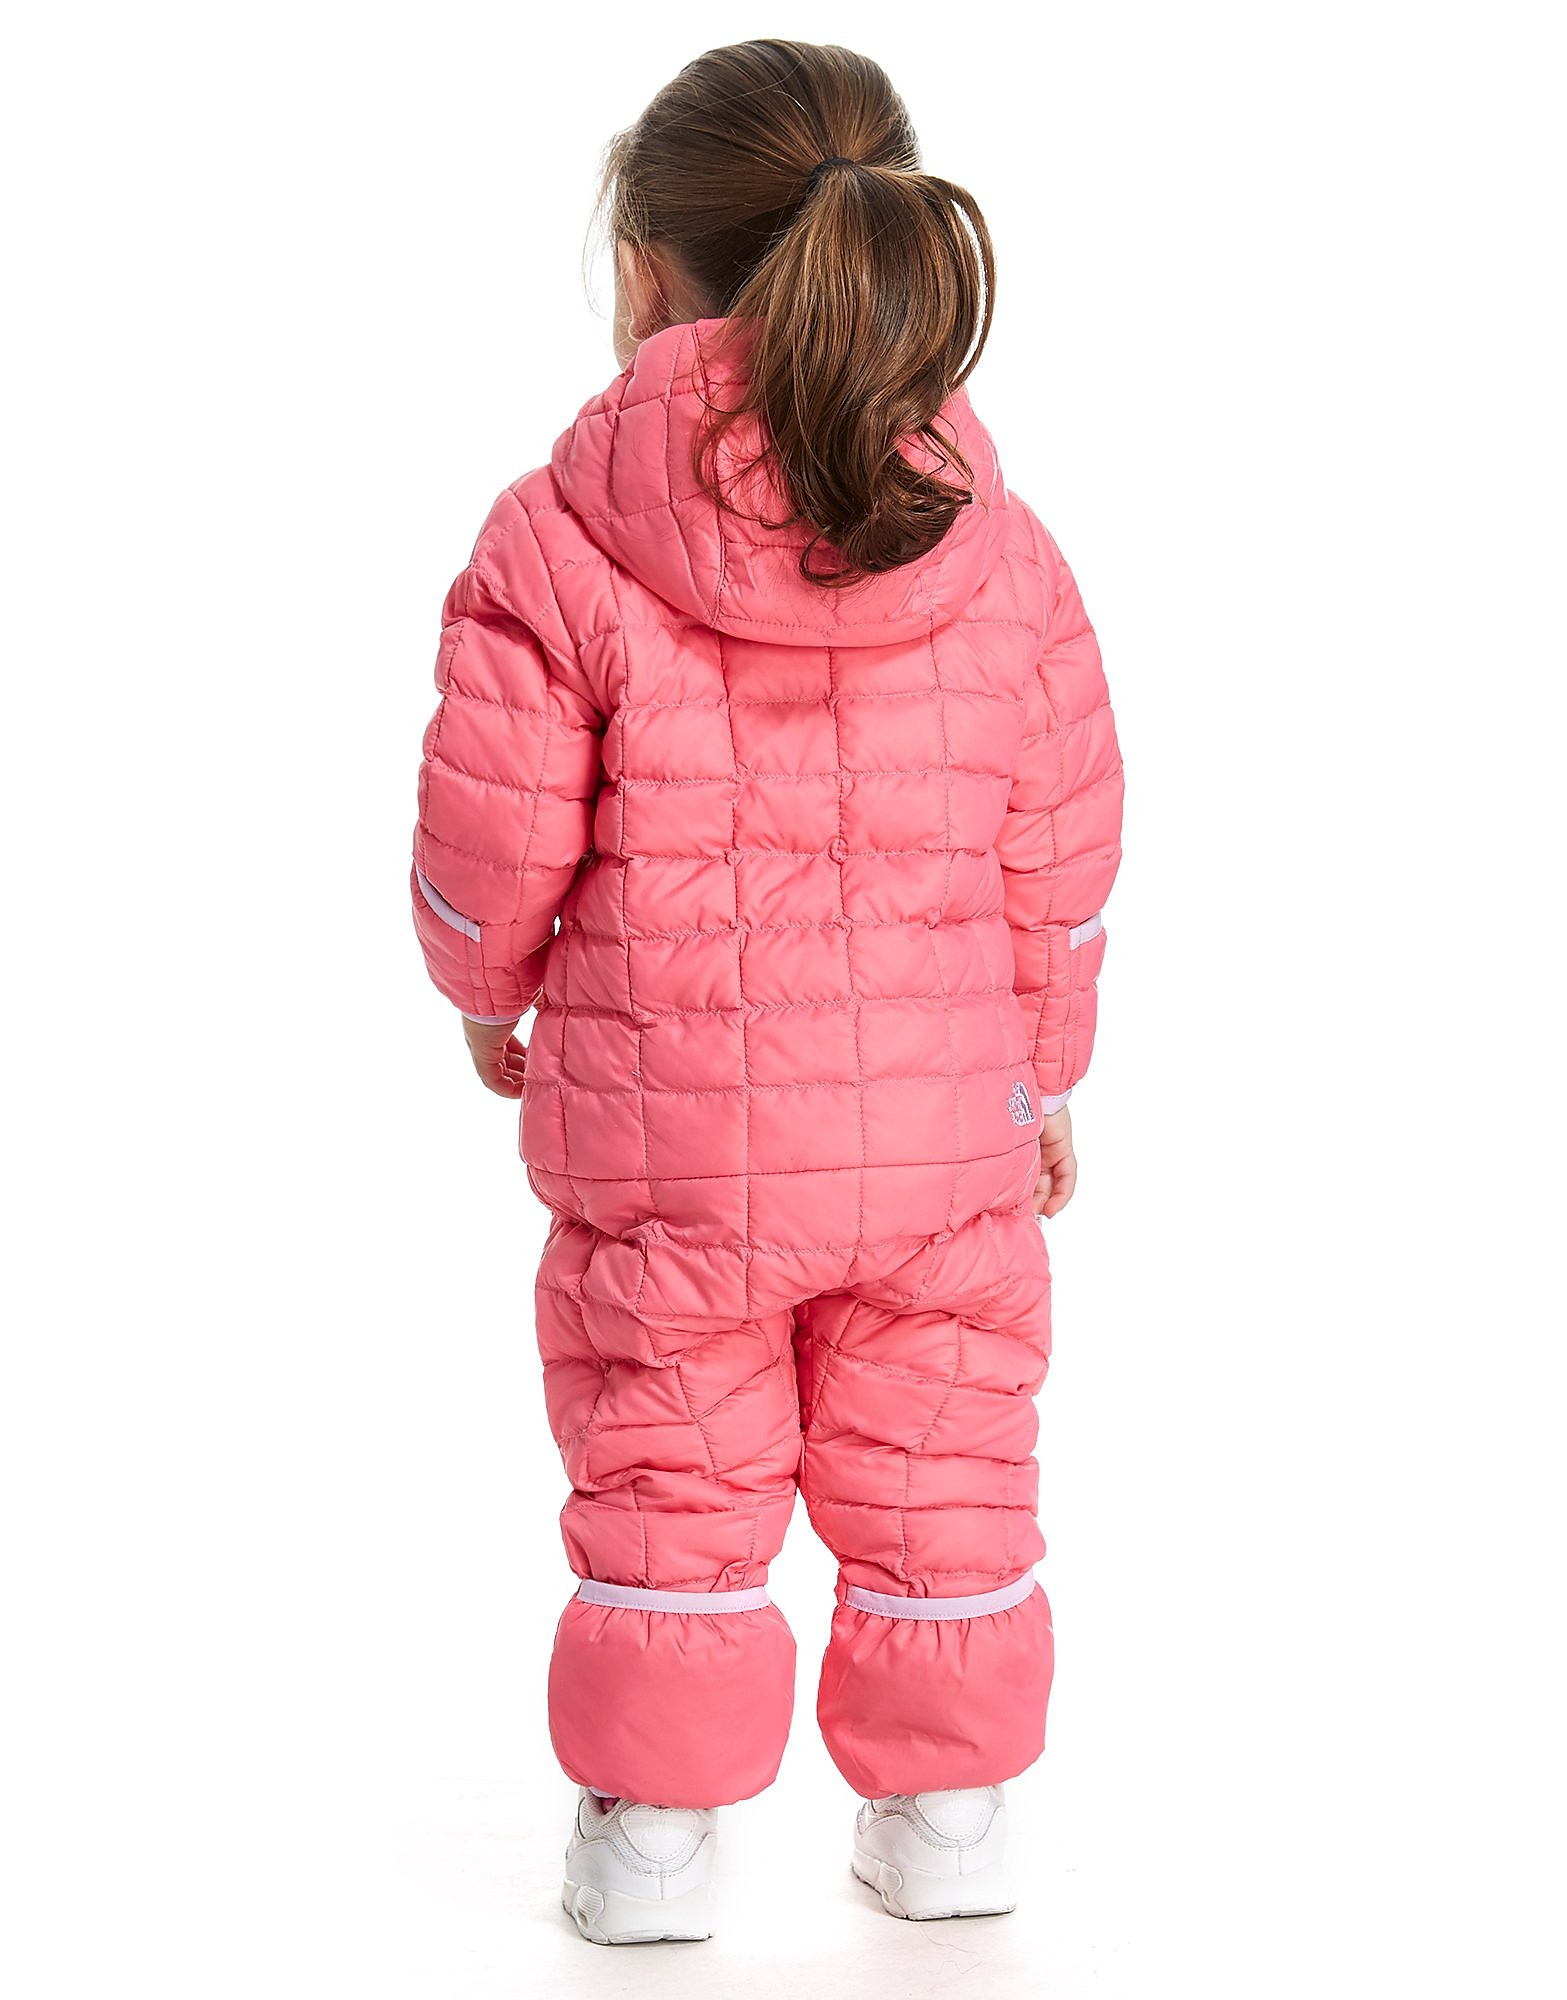 The North Face Girls' Thermoball Suit Infant